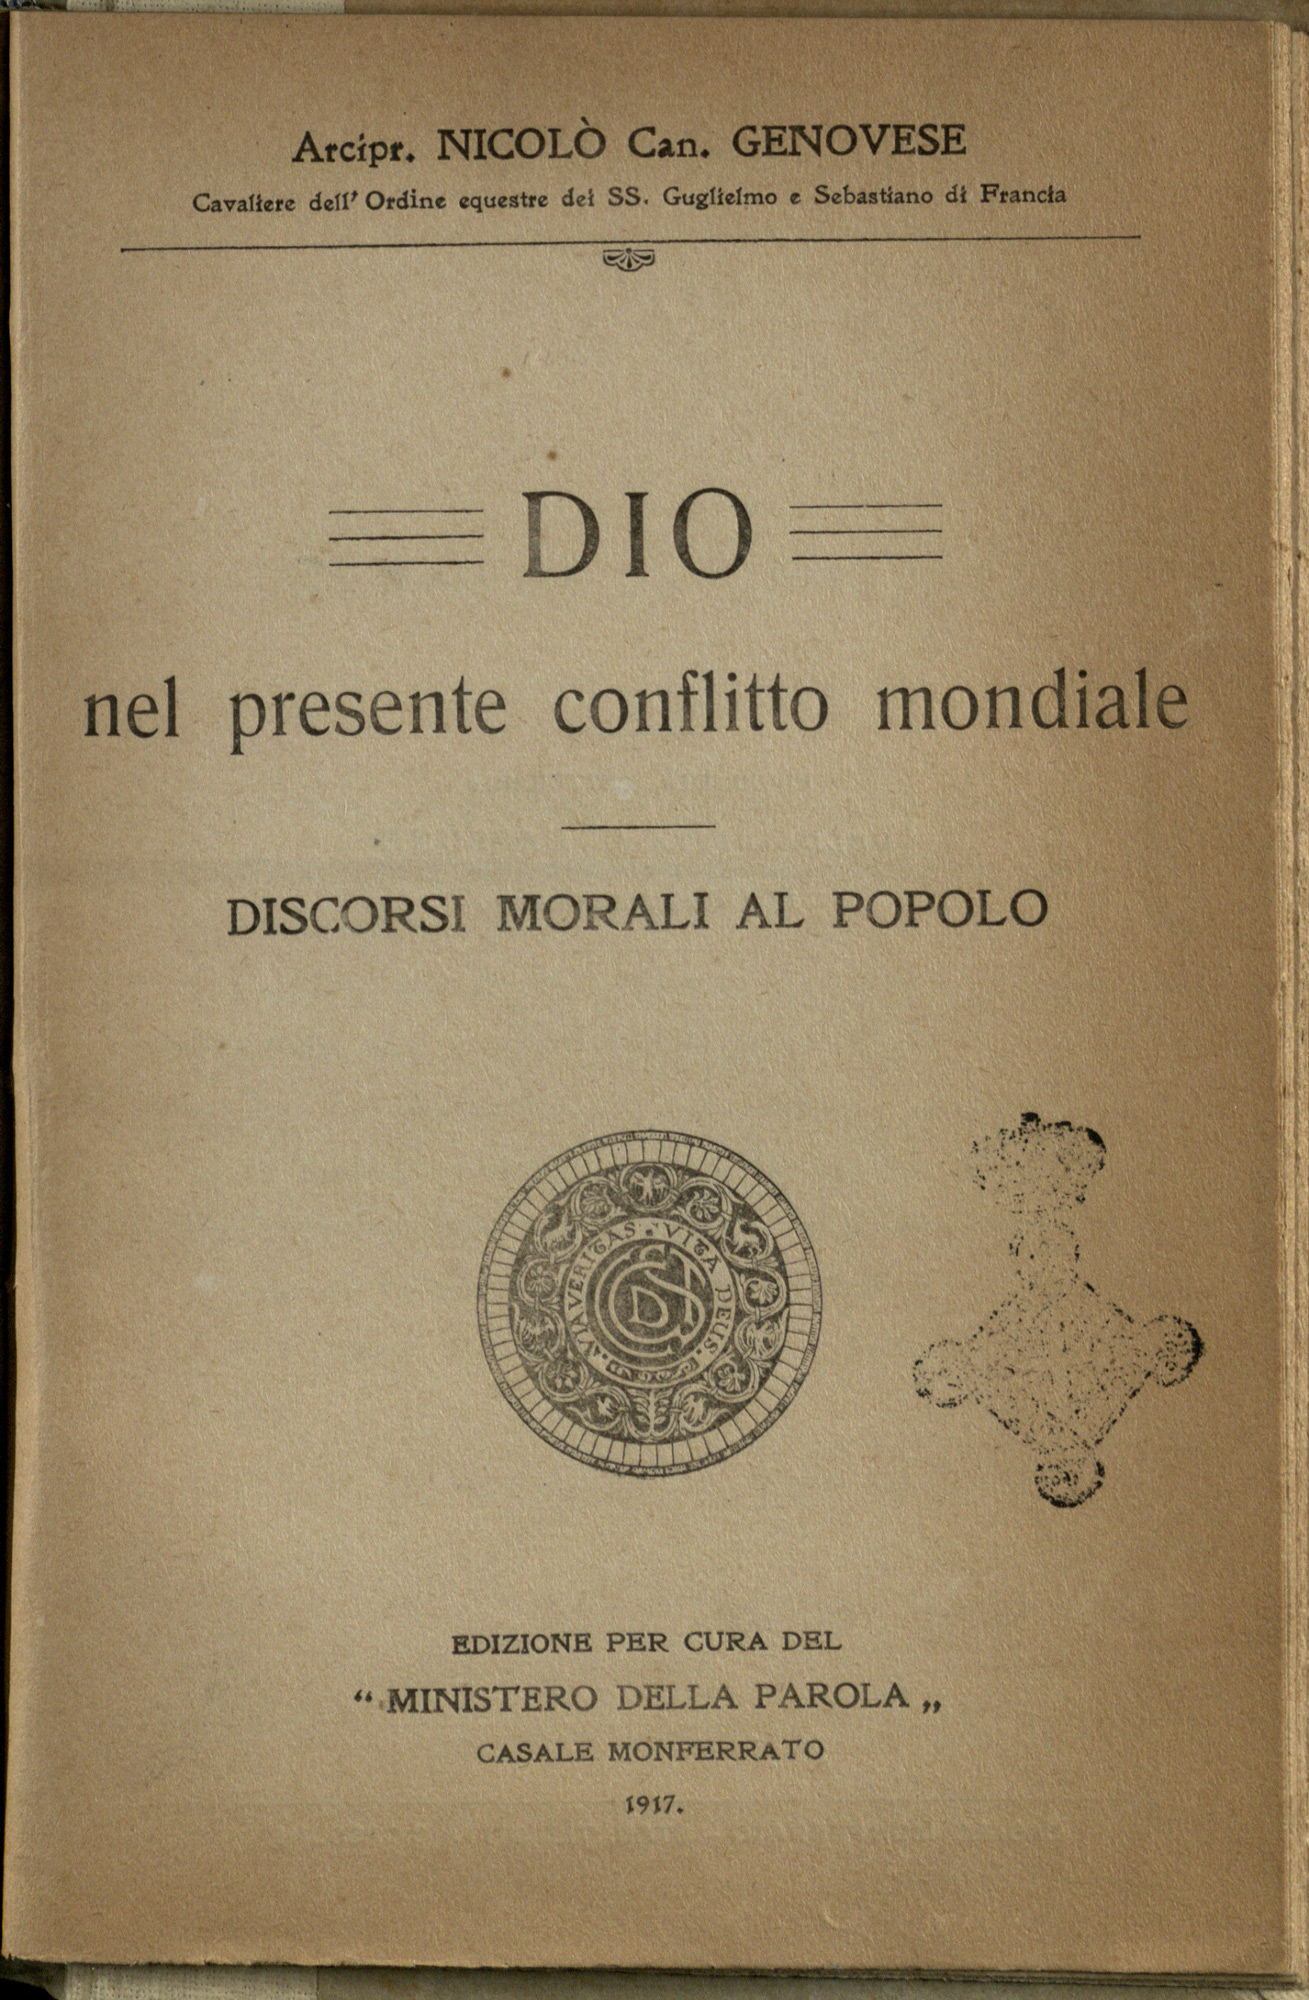 'God in the Present Conflict': Italian religious booklet, 1917. Italy's military chaplains wrote many booklets like these. Here, the author considers the war to be self-defence.